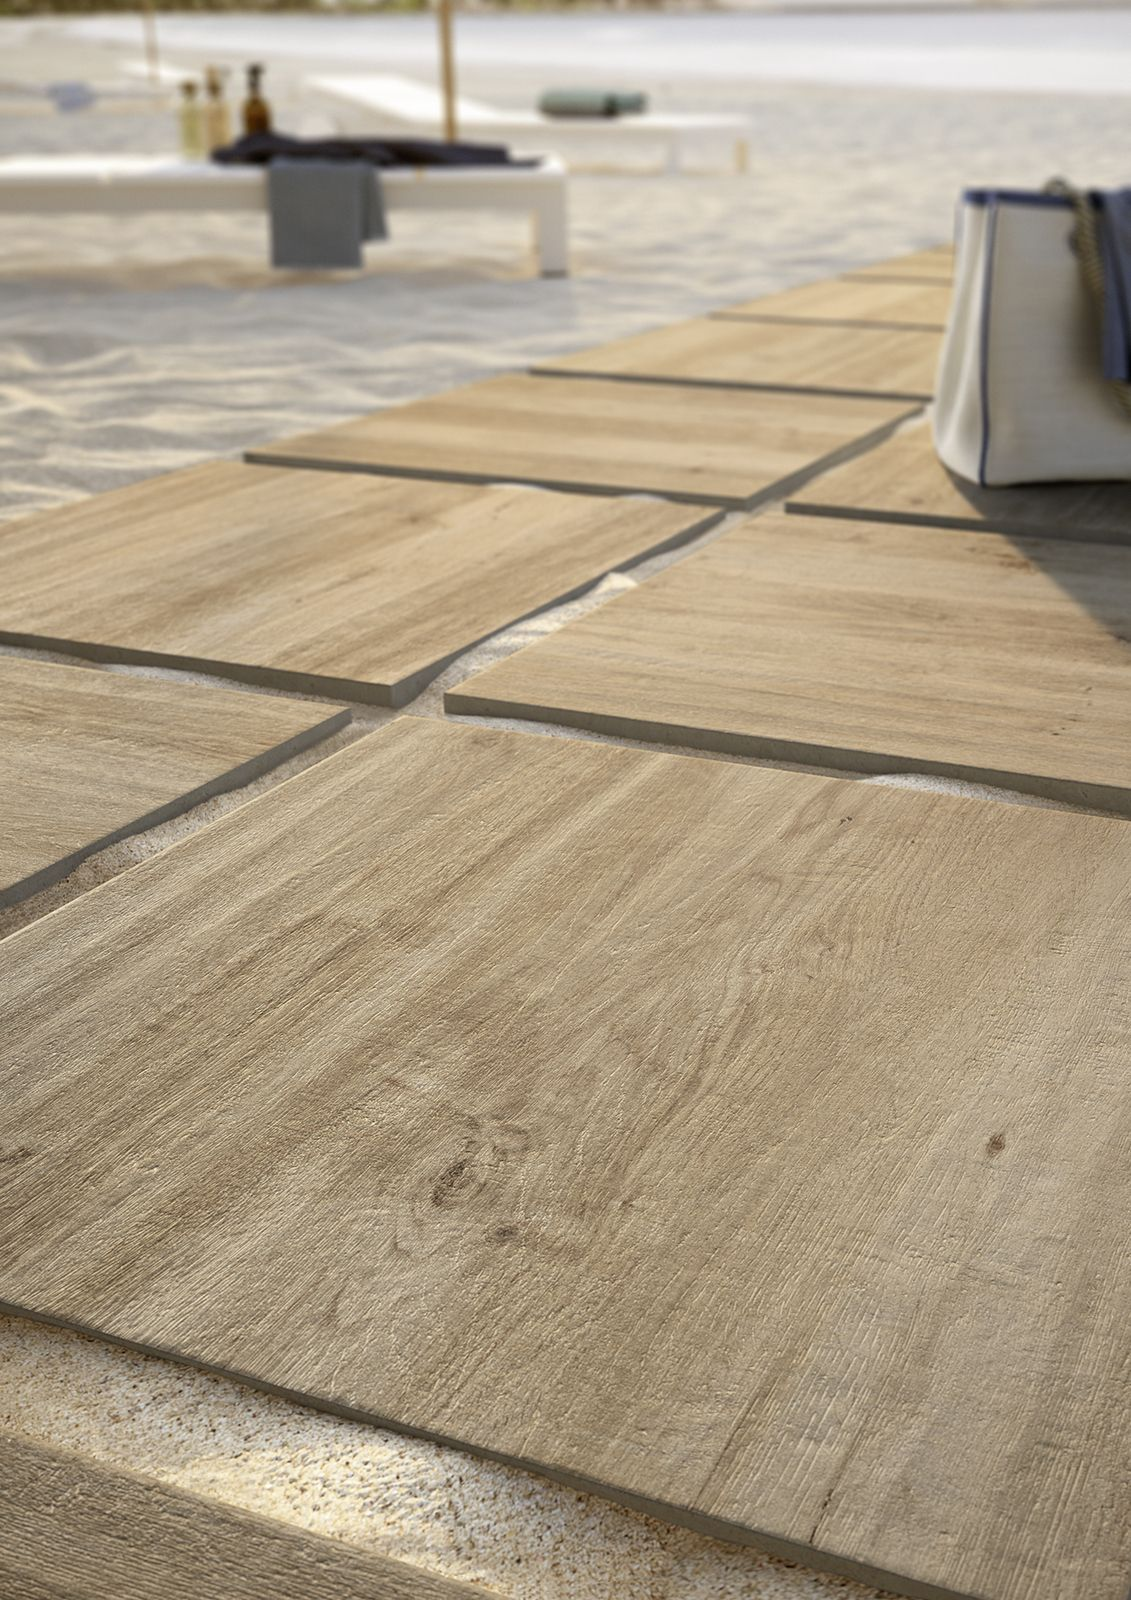 Treverkhome20 - outdoor wood effect thick tiles #Marazzi ...